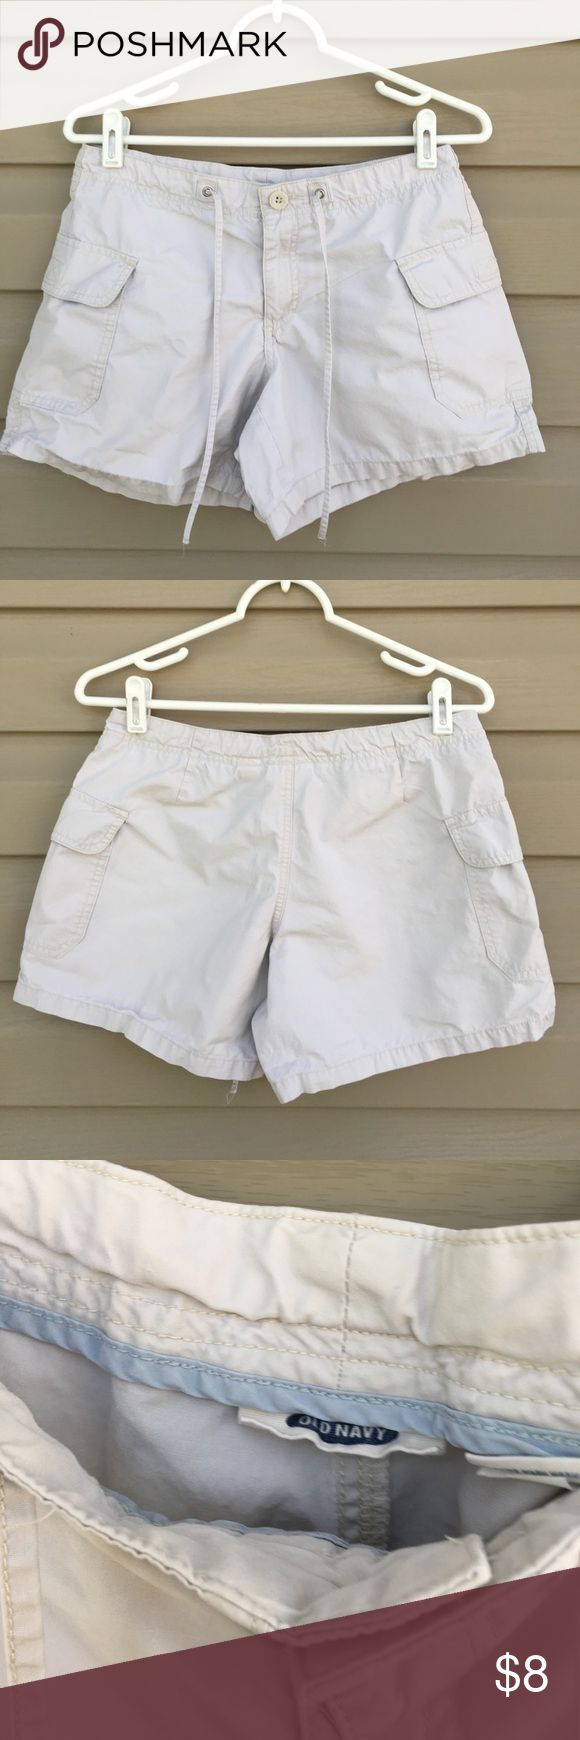 Old Navy women's shorts Nice zip front 100% cotton shorts with side pockets, tie at waist. No stains or holes Old Navy Shorts